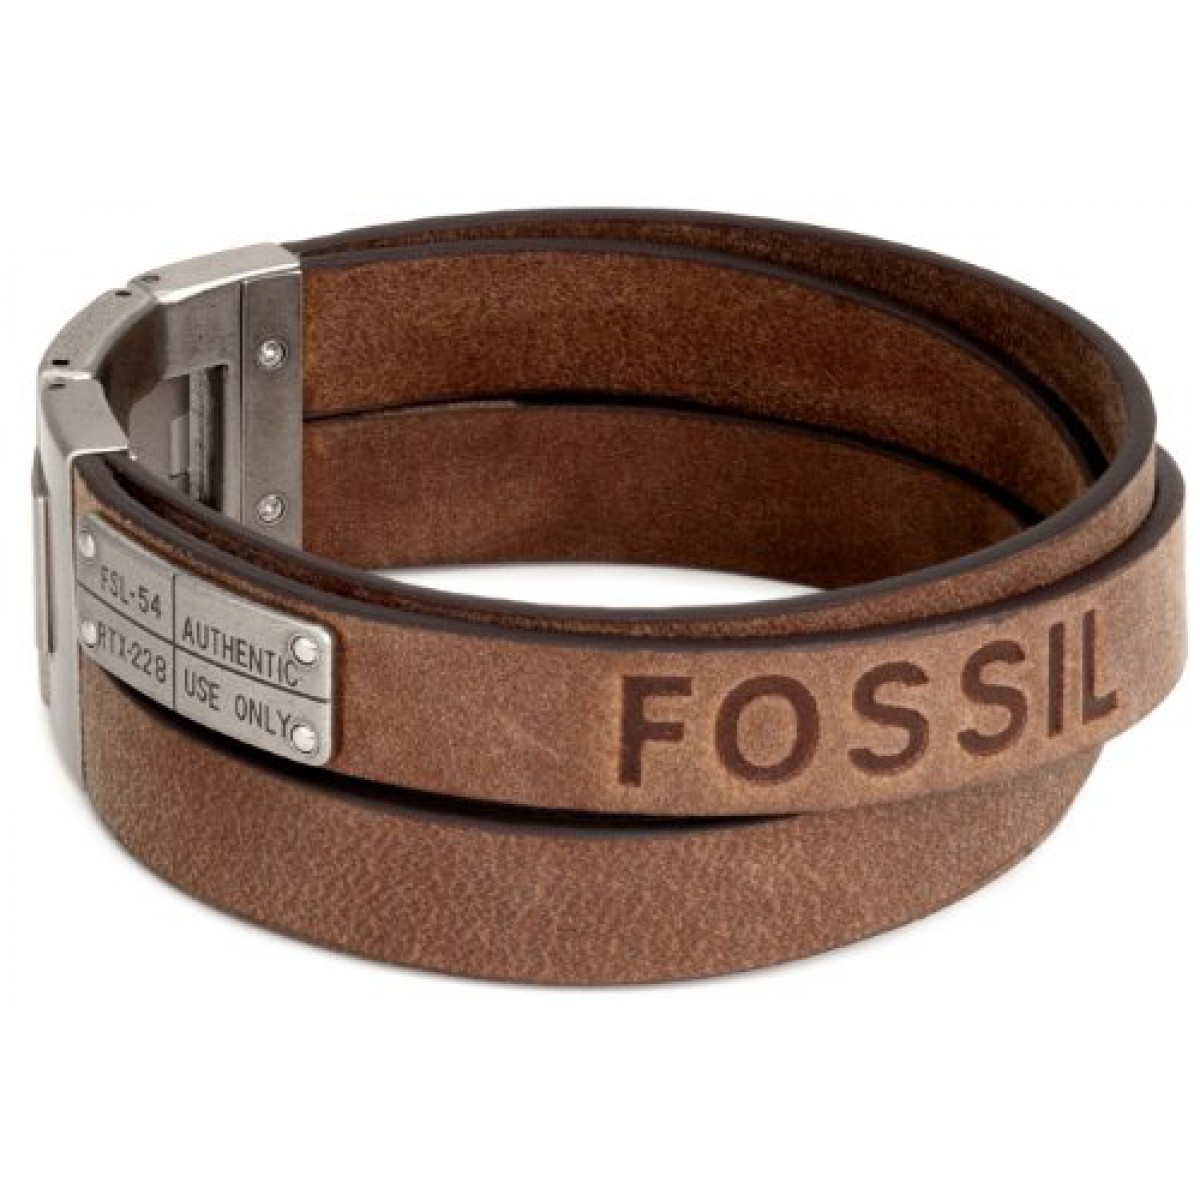 fossil herren armband leder mit logo pr gung. Black Bedroom Furniture Sets. Home Design Ideas